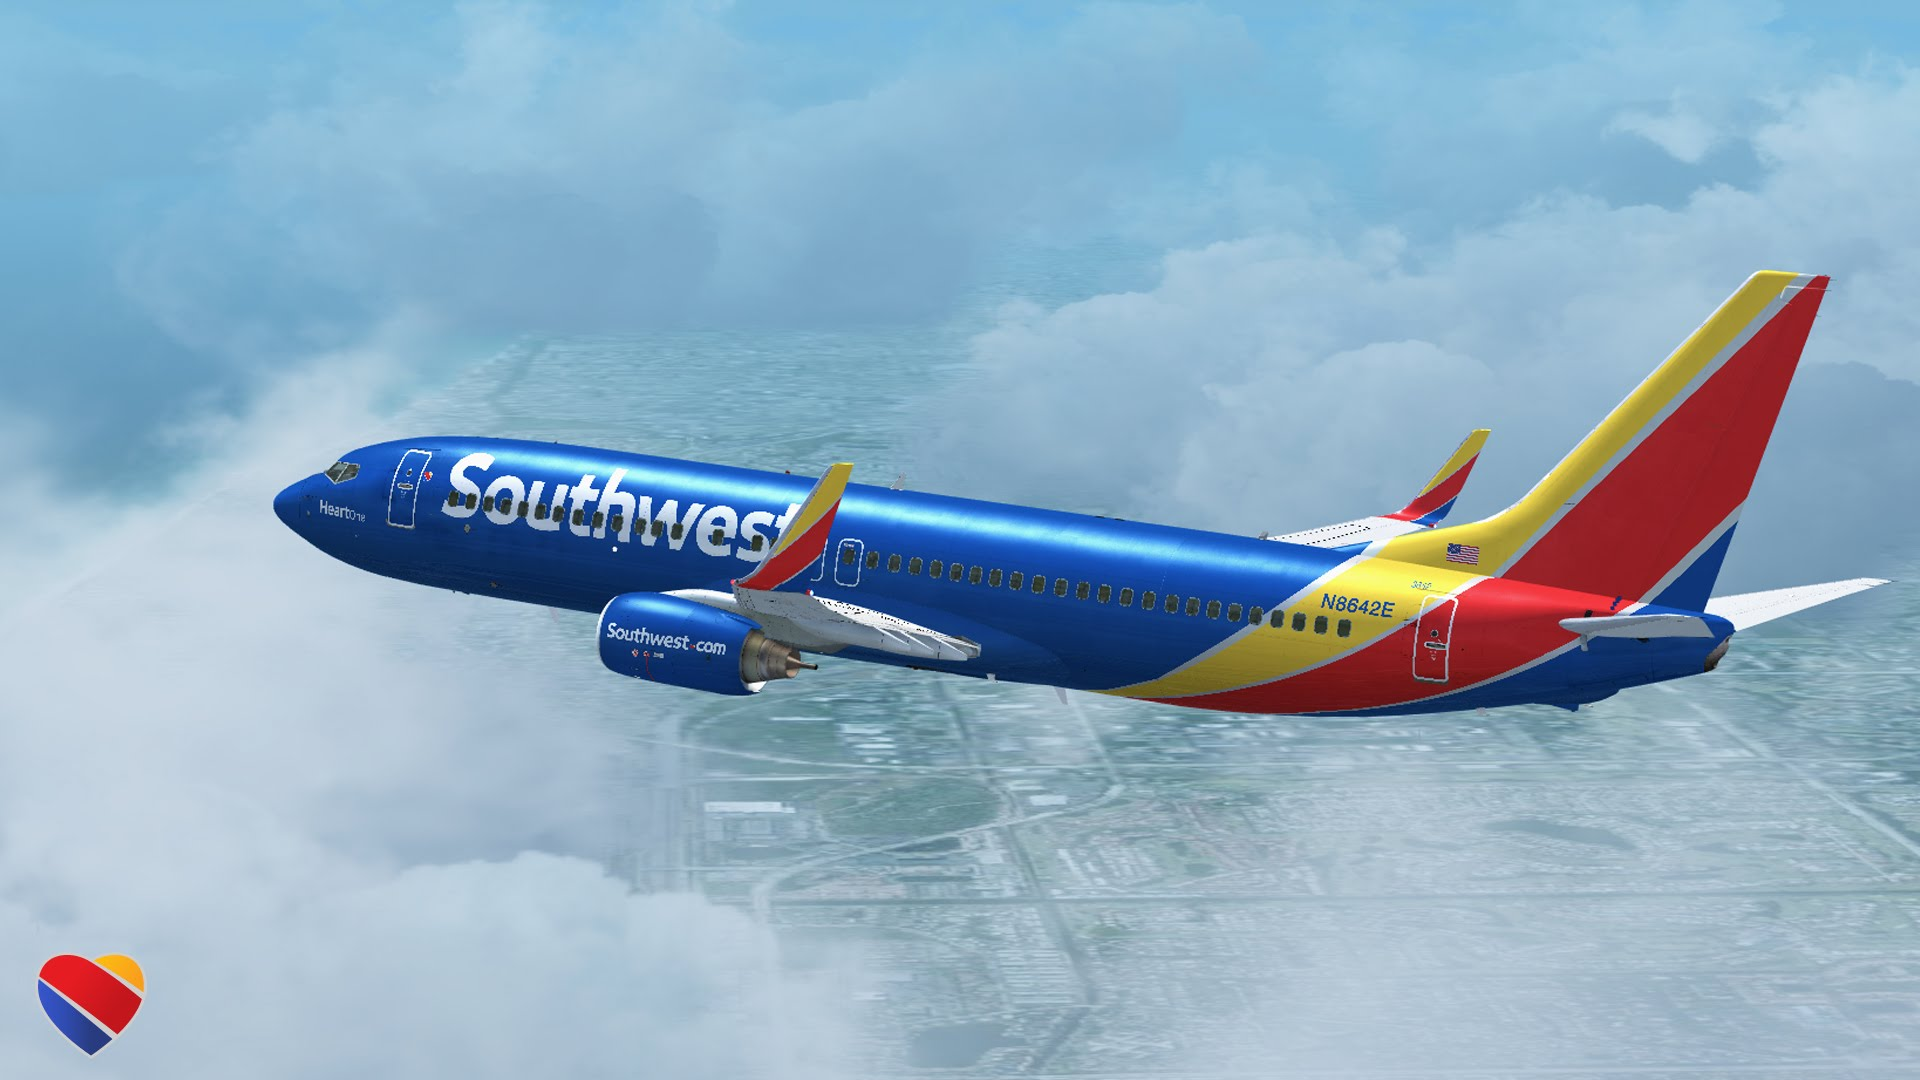 Rain Wallpapers With Love Quotes Download Southwest Airlines Wallpaper Gallery